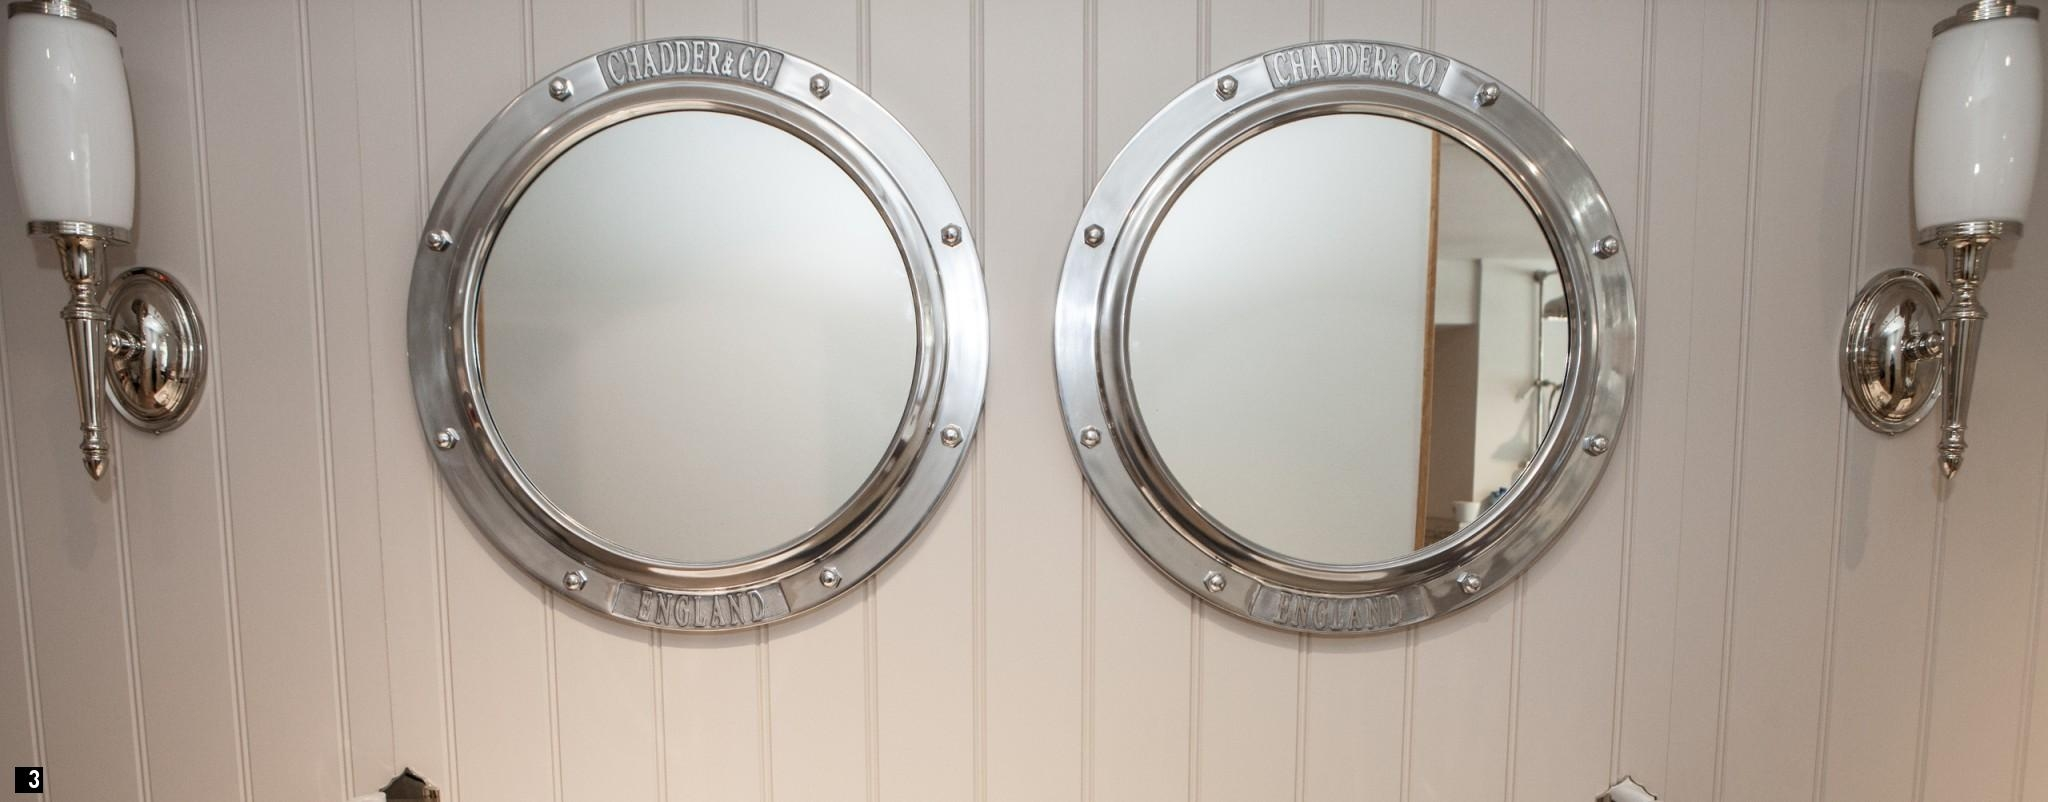 Porthole Mirrors Product Categories Chadder Co Pertaining To Porthole Mirrors (Image 9 of 15)